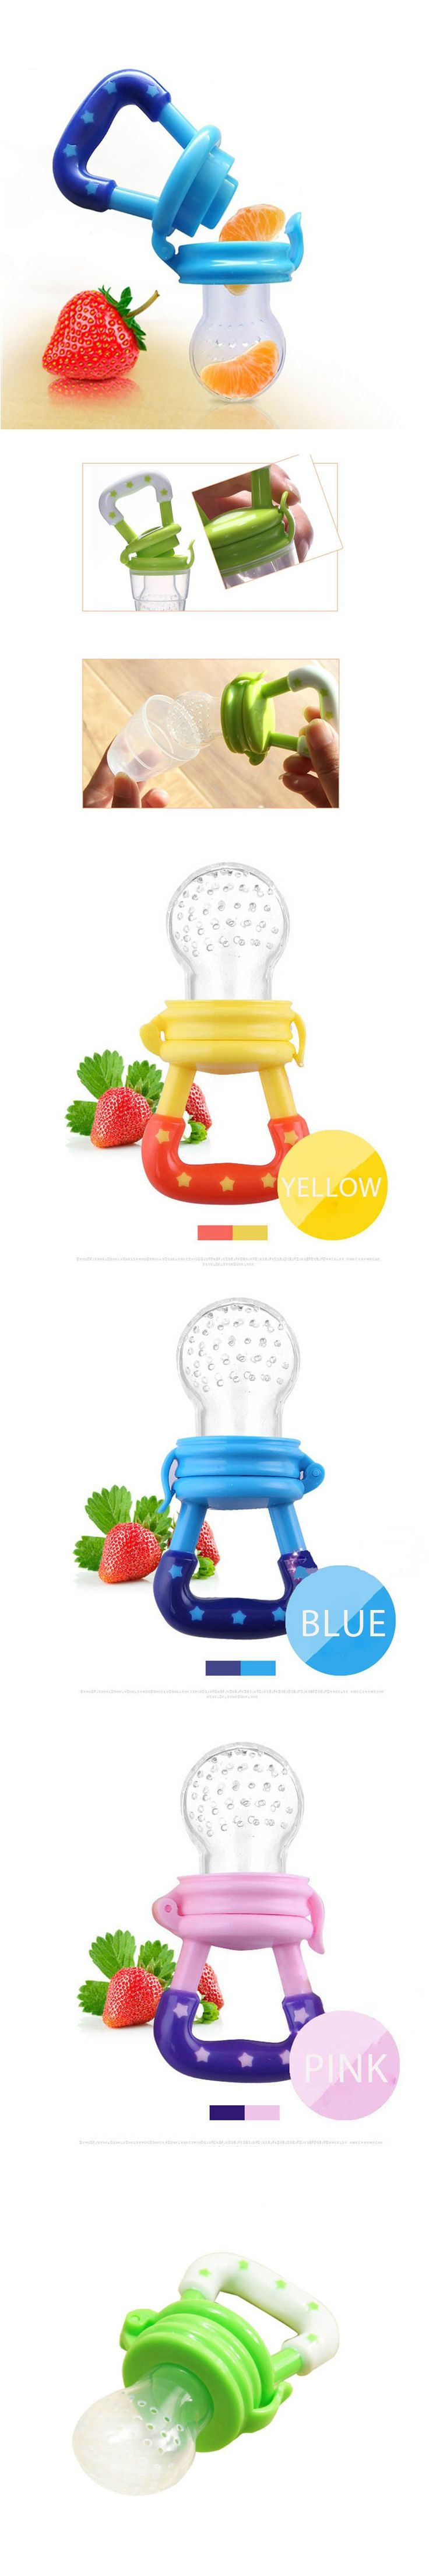 1 Piece Baby Teether Pacifier Fruit BPA Free Safety Newborn Teethers Nipple Shape Teether Oral Care Yellow Green Blue Pink $3.56